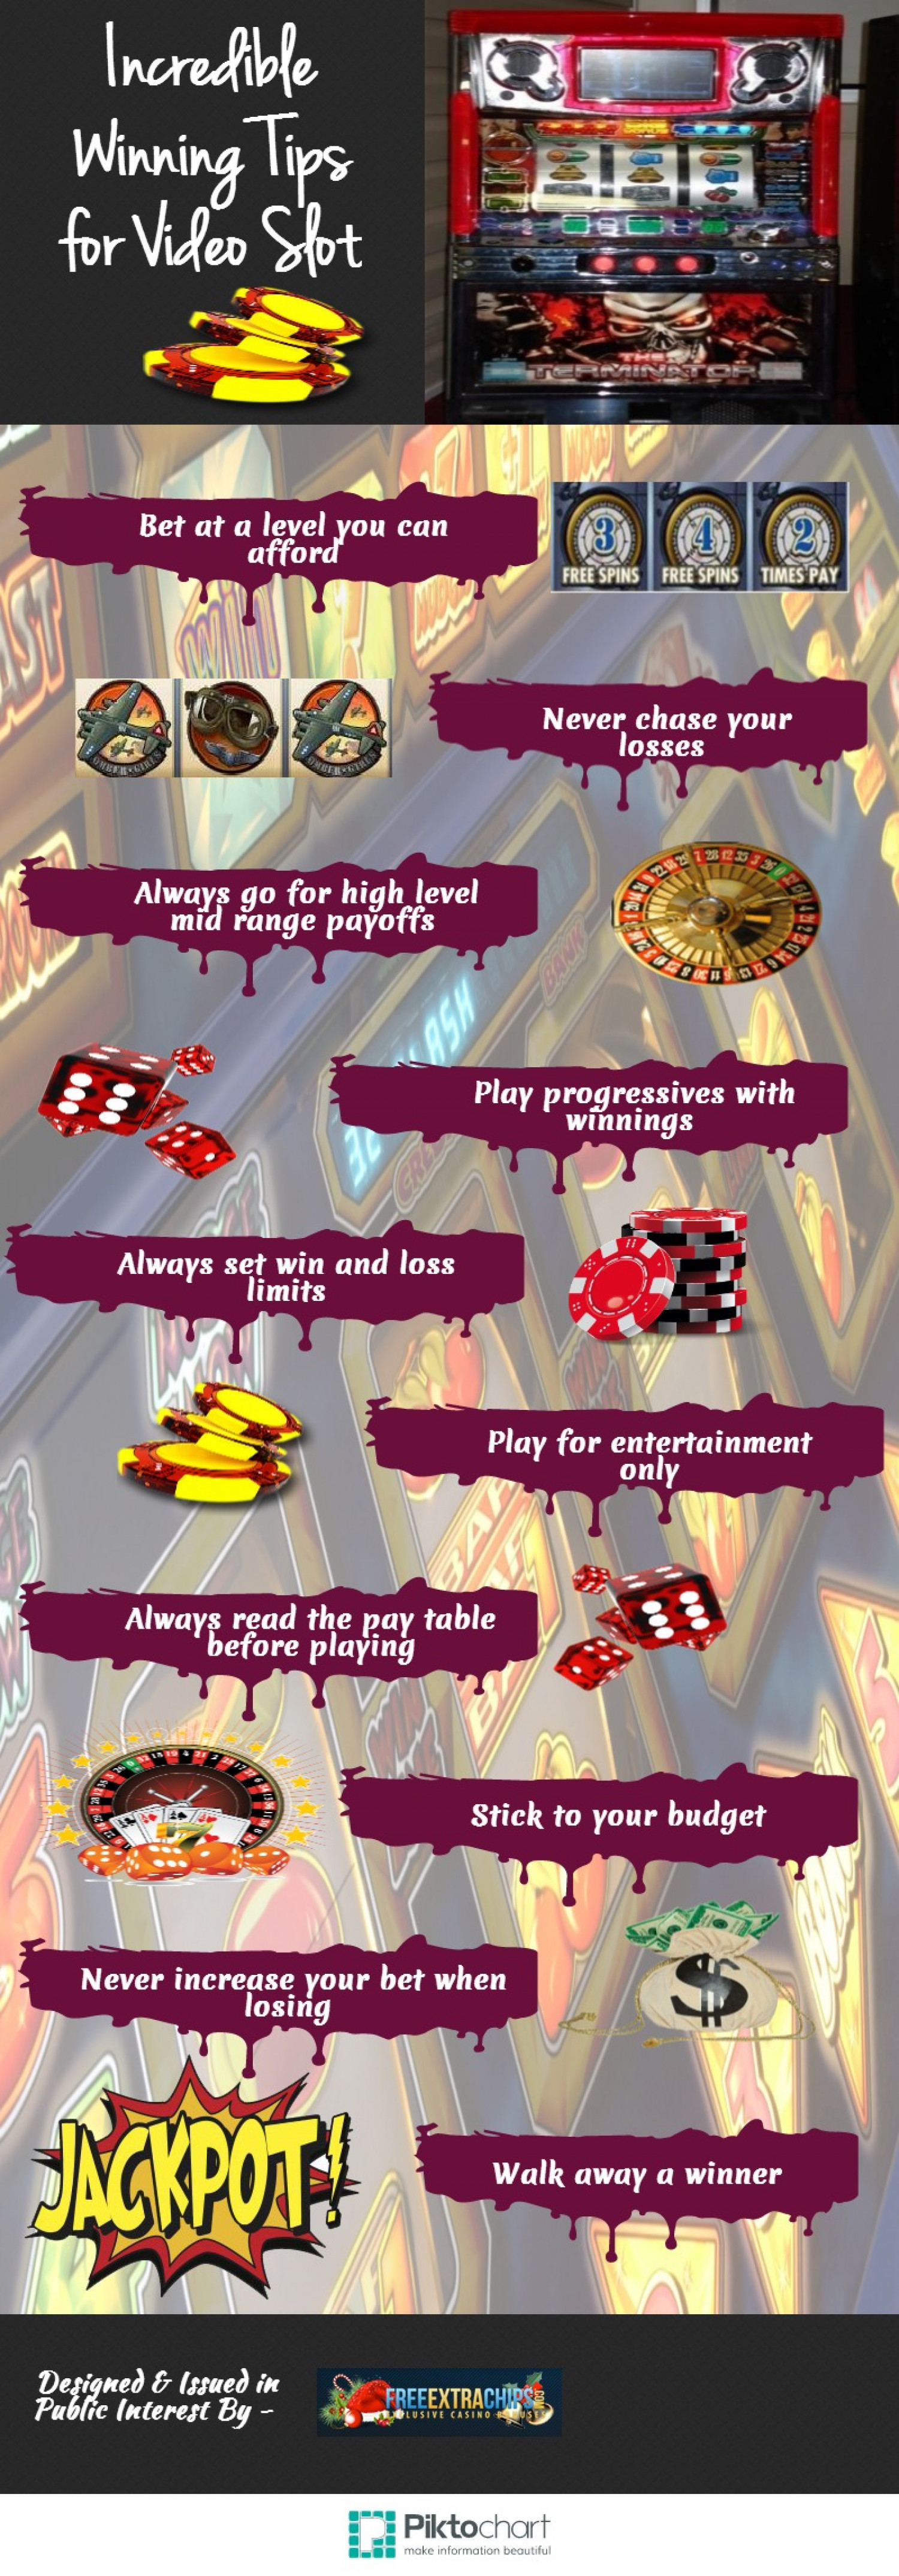 Incredible Winning Tips for Video Slot Infographic